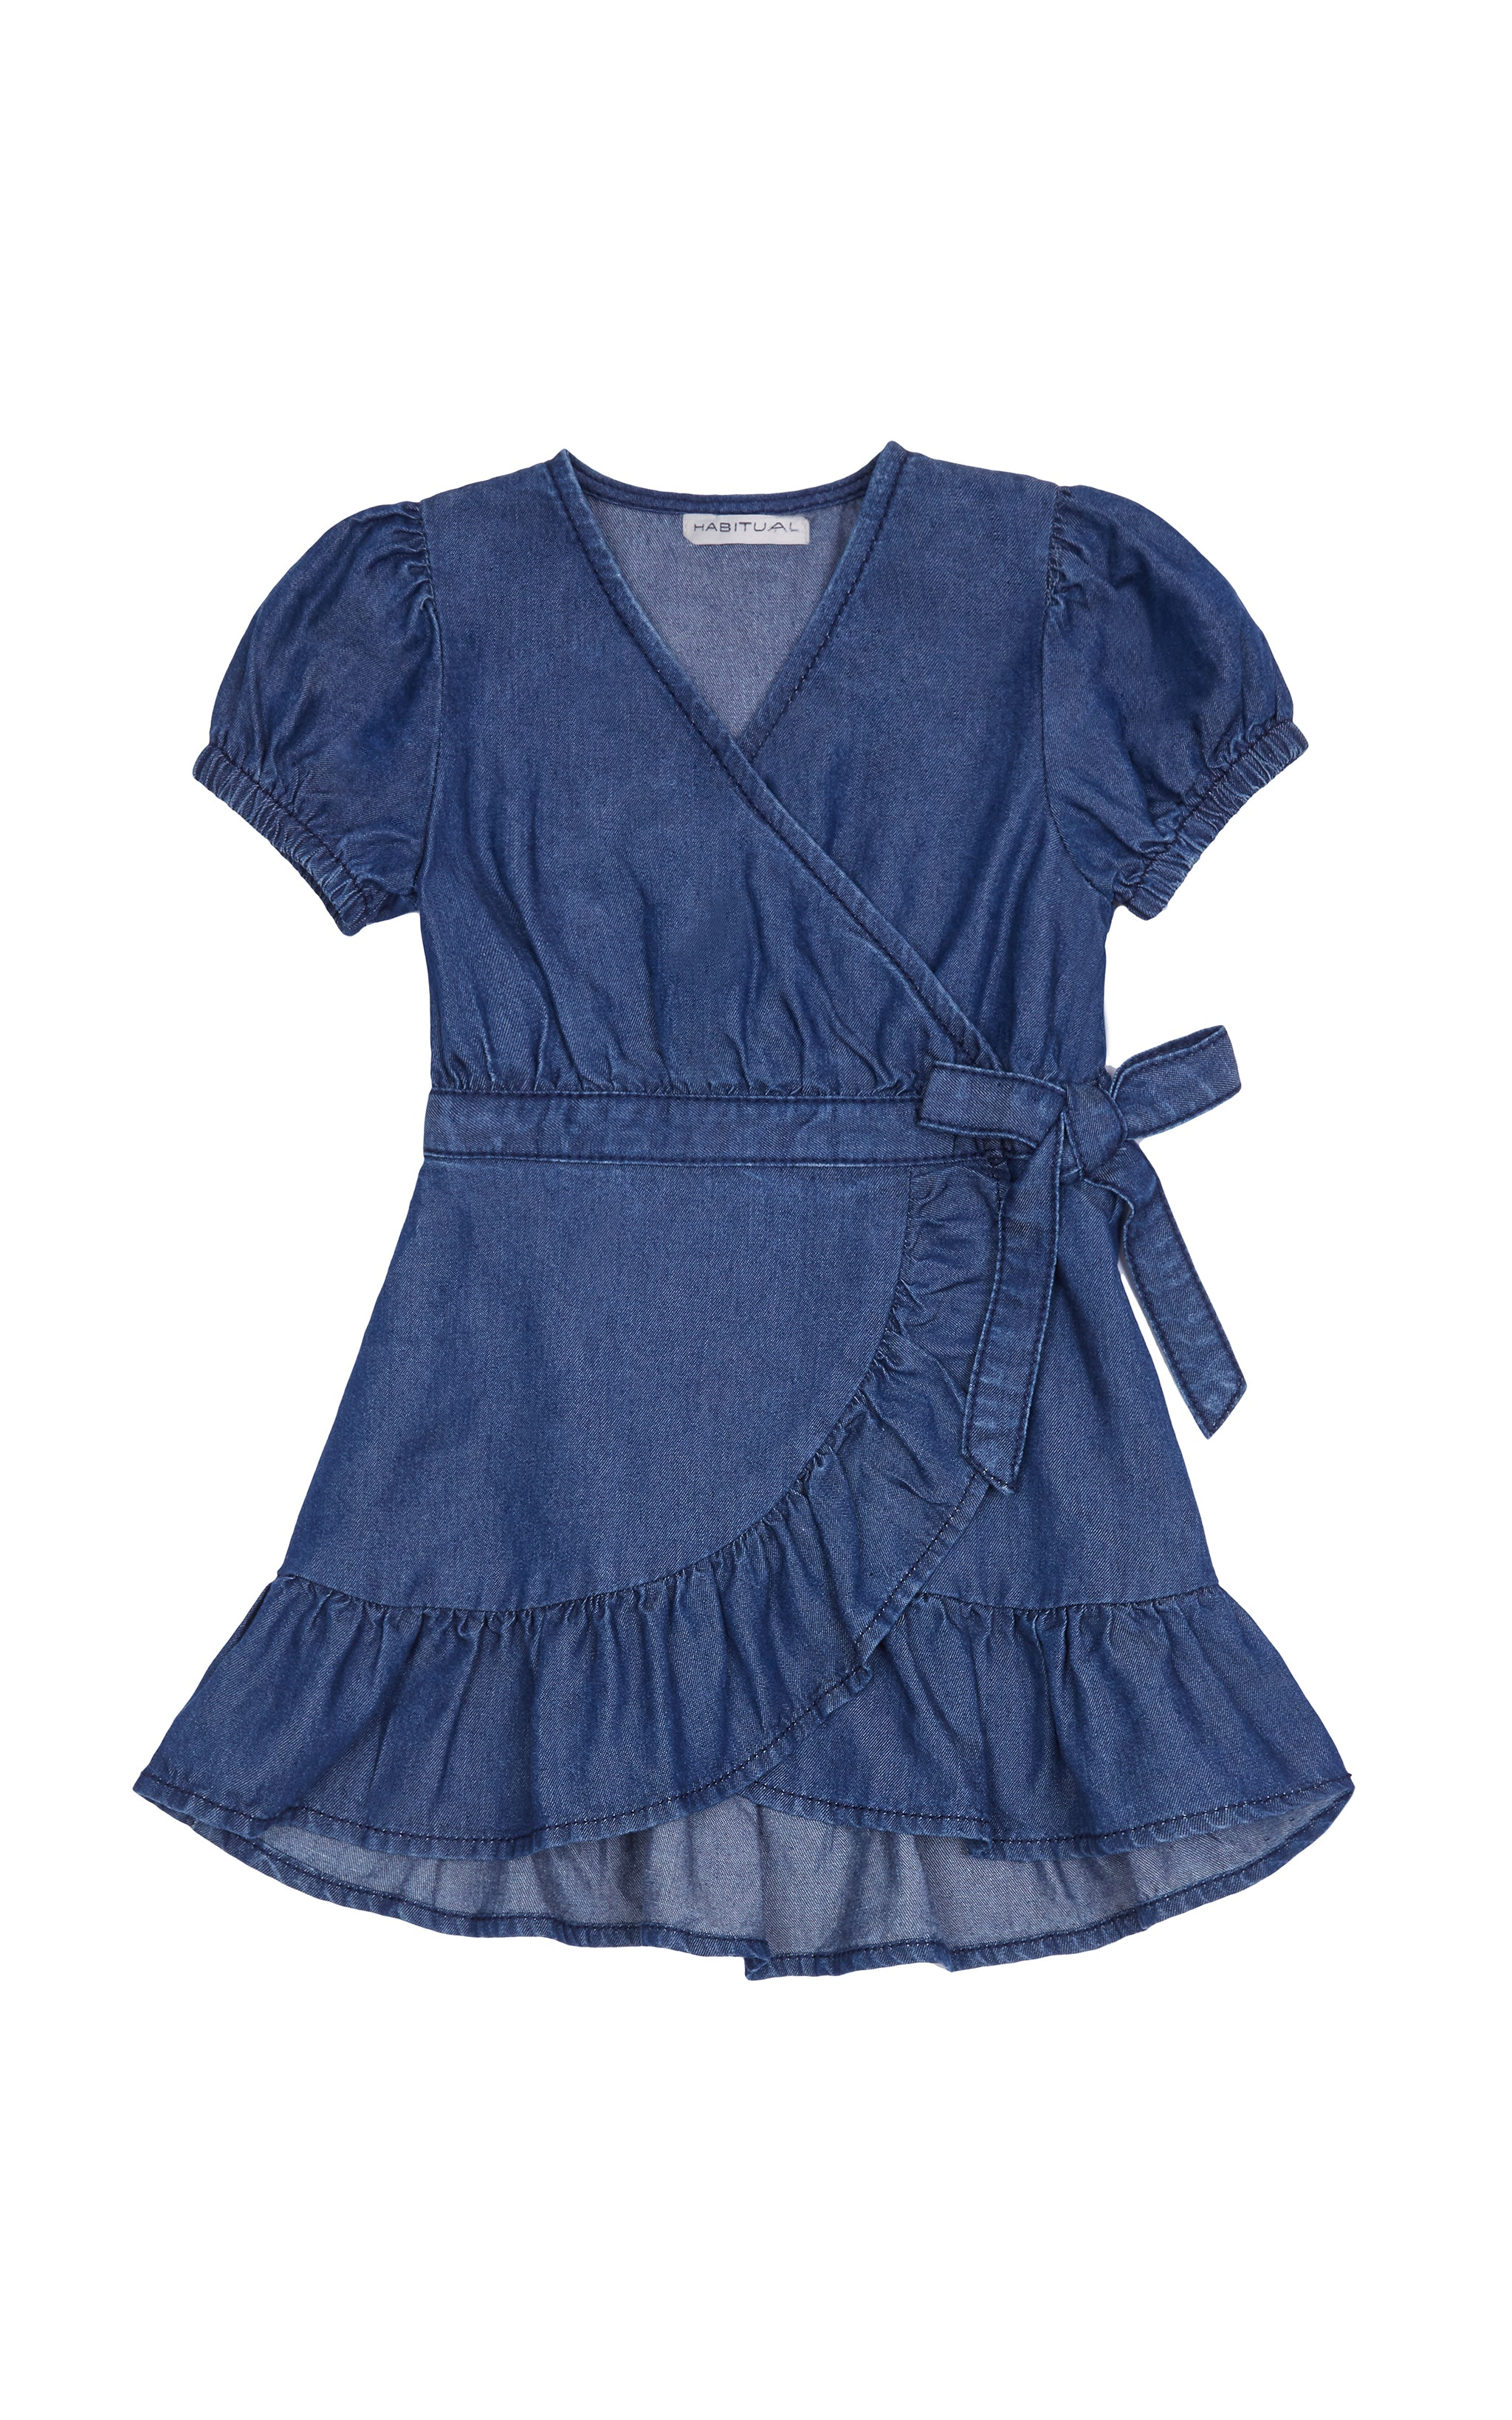 Shae Wrap Dress | 2T-4T - Habitual